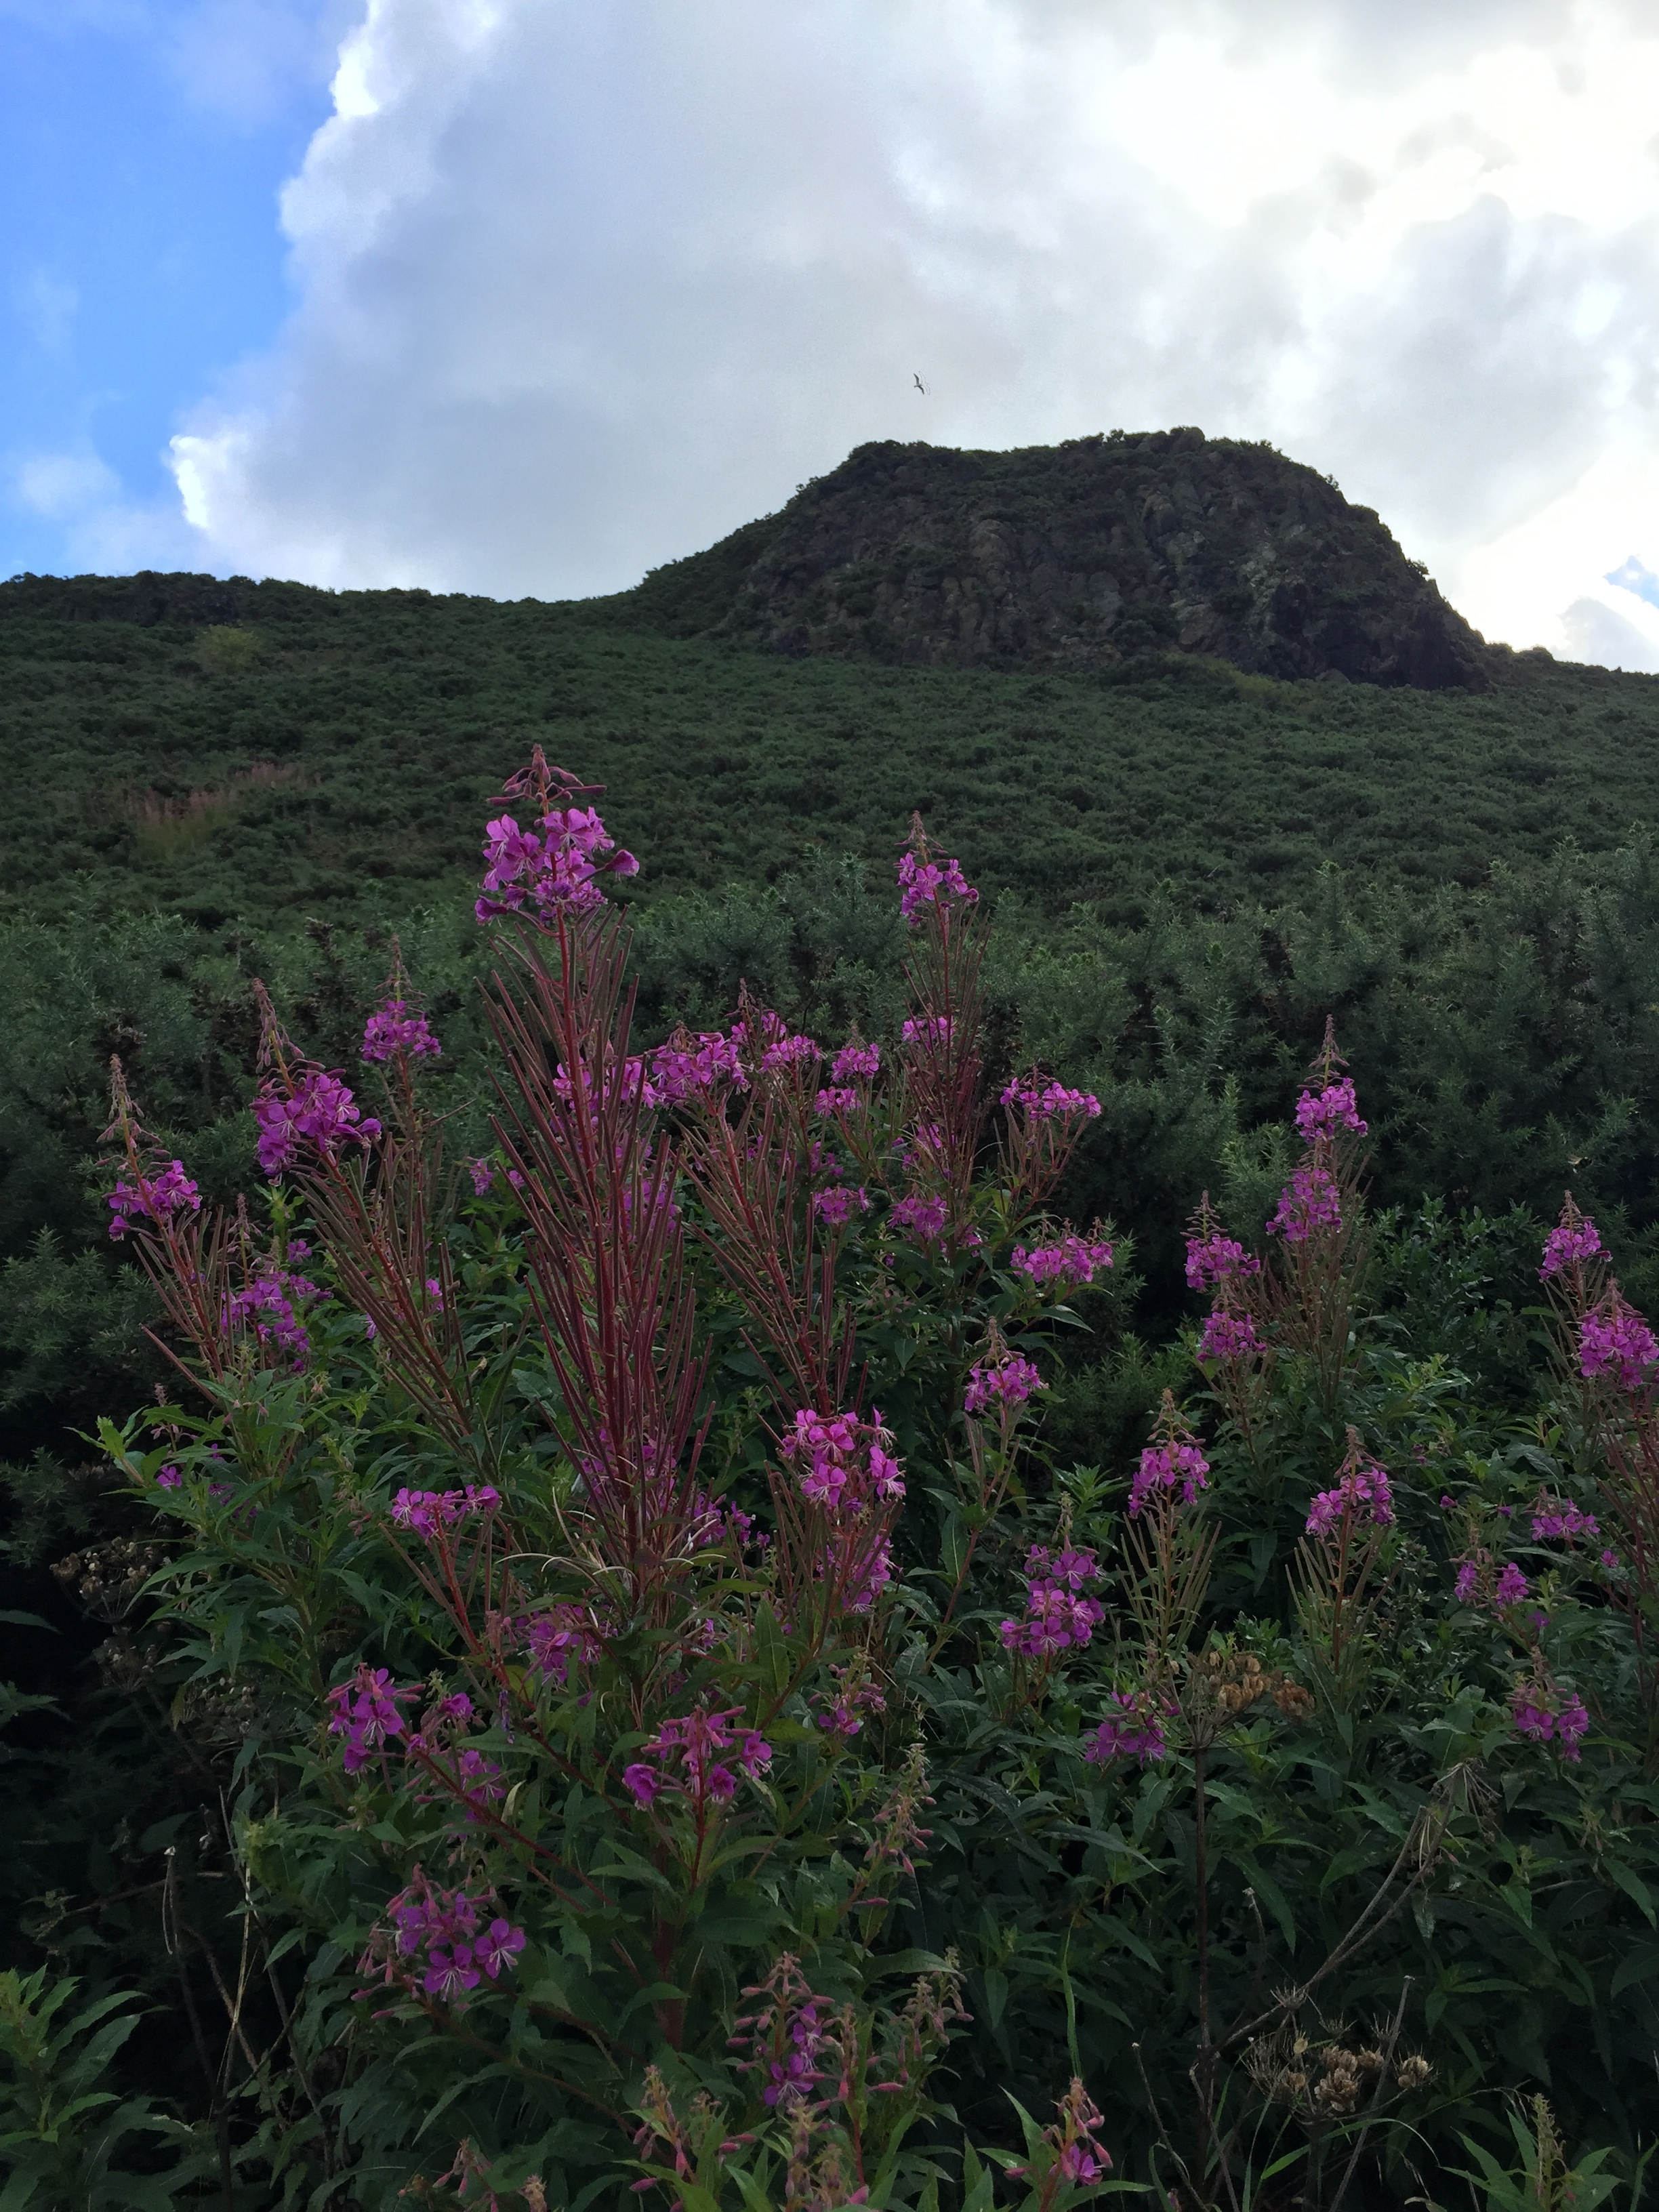 Wildflowers at the foot of Arthur's Seat.